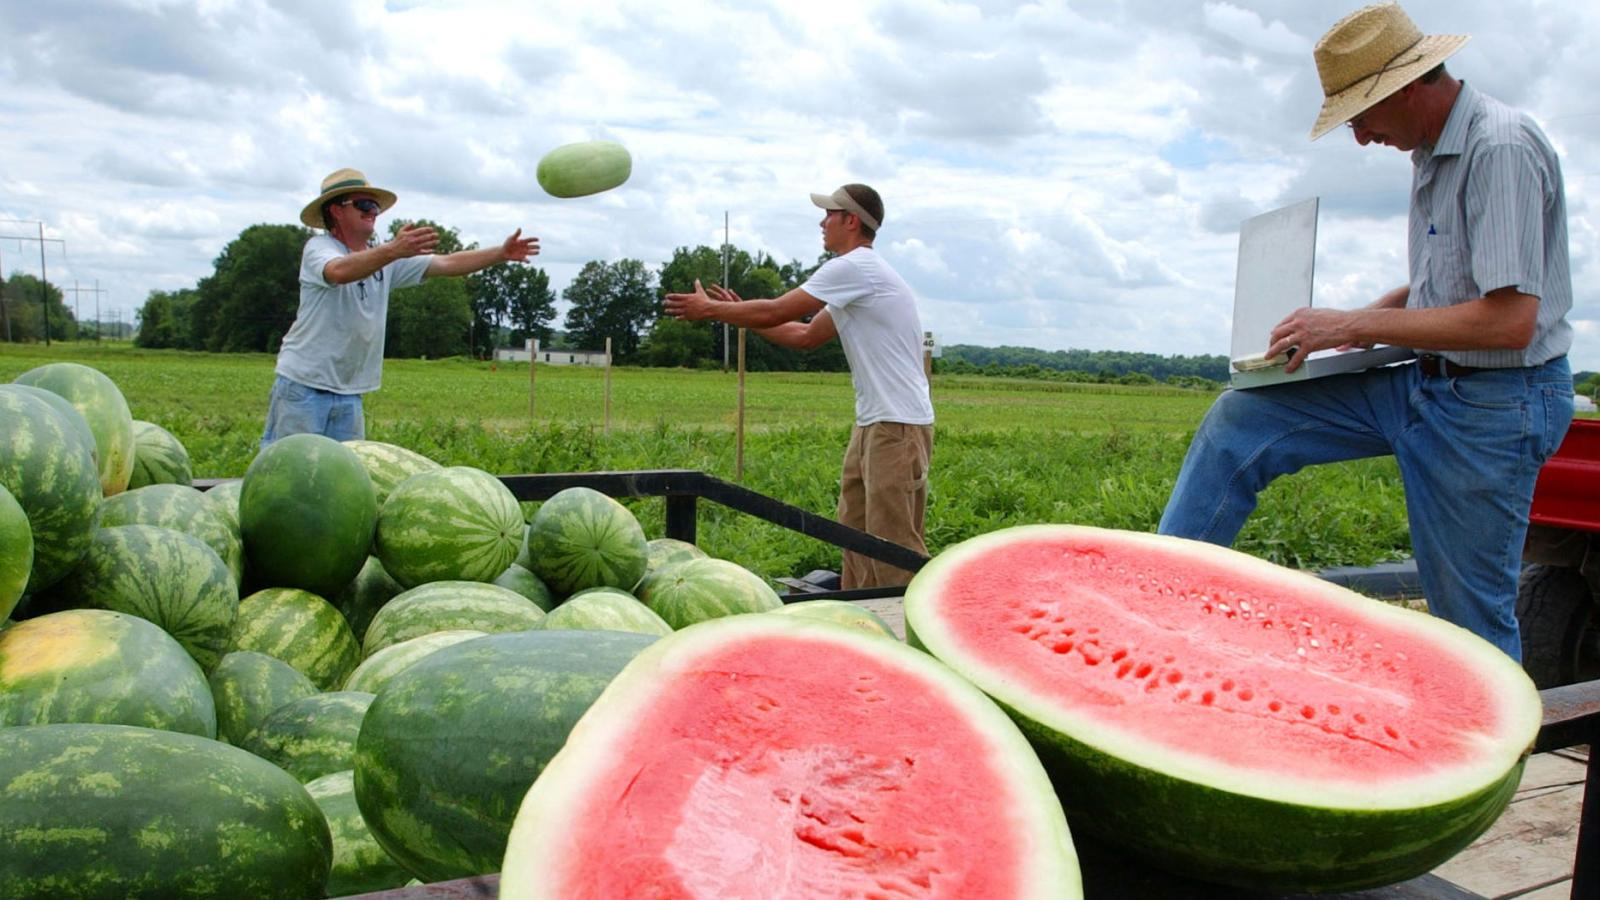 Image result for World's Largest Watermelon Farm. - Tons of Watermelon Growing